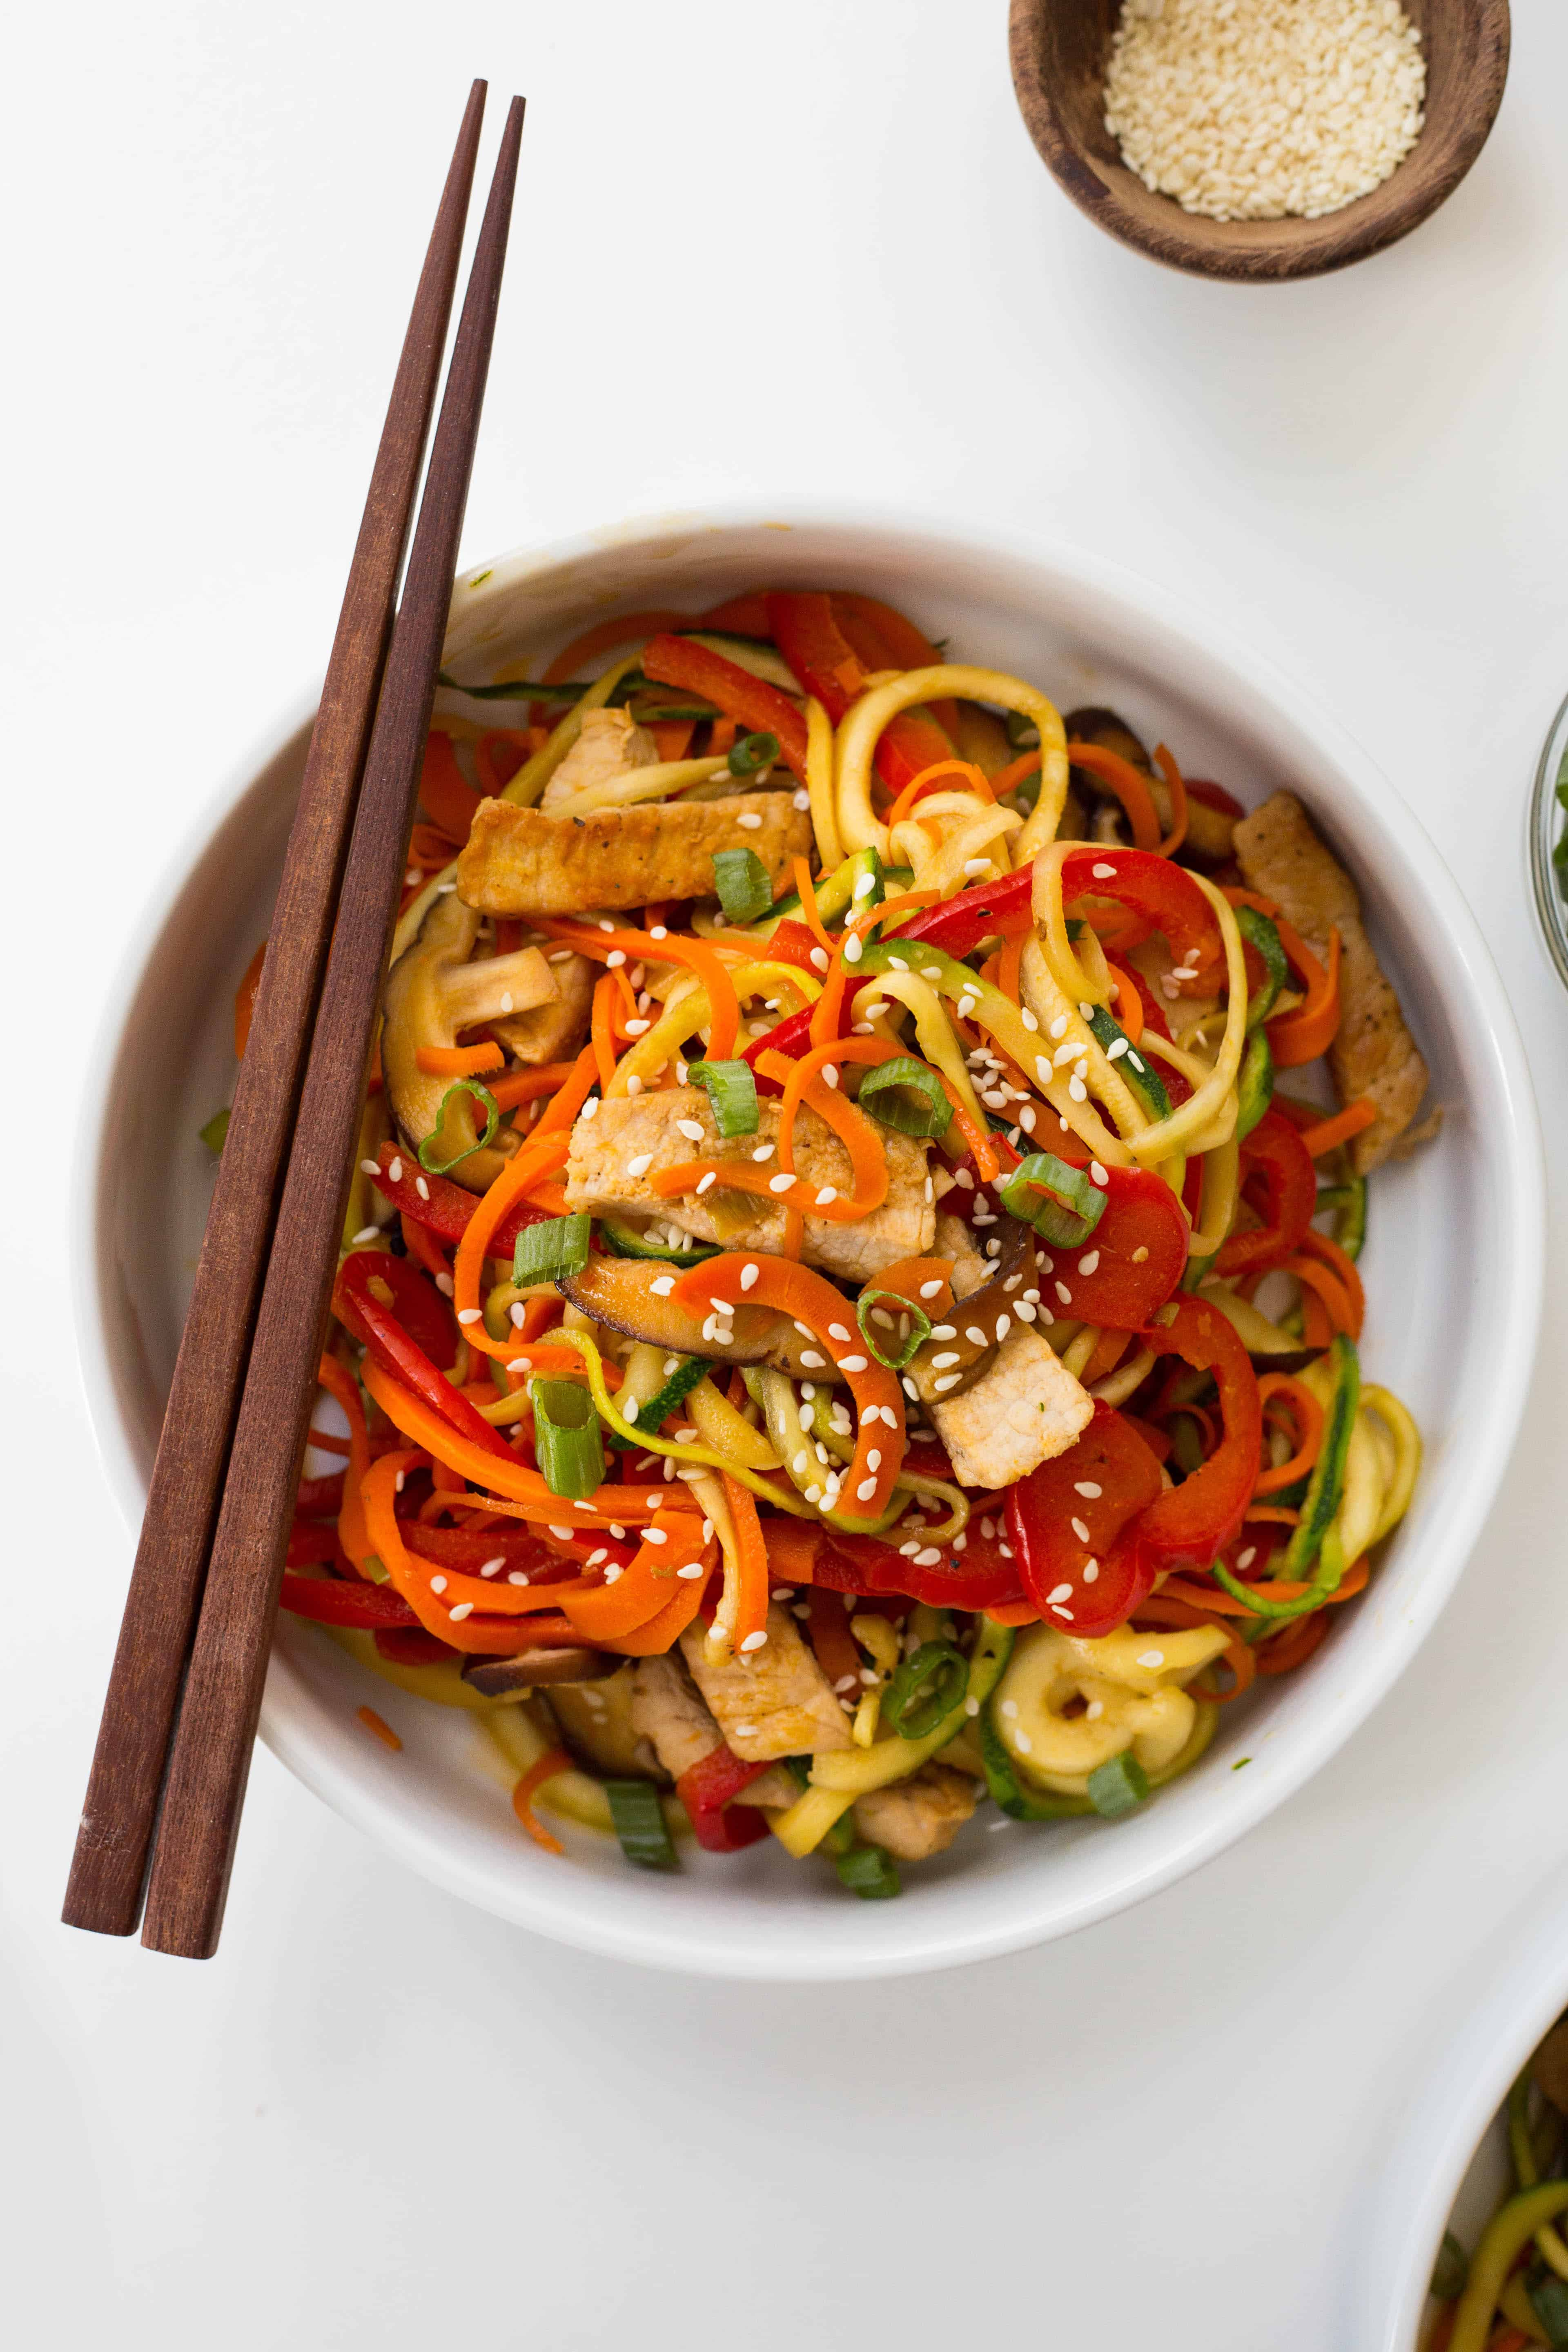 Pork Lo Mein with Zucchini Noodles